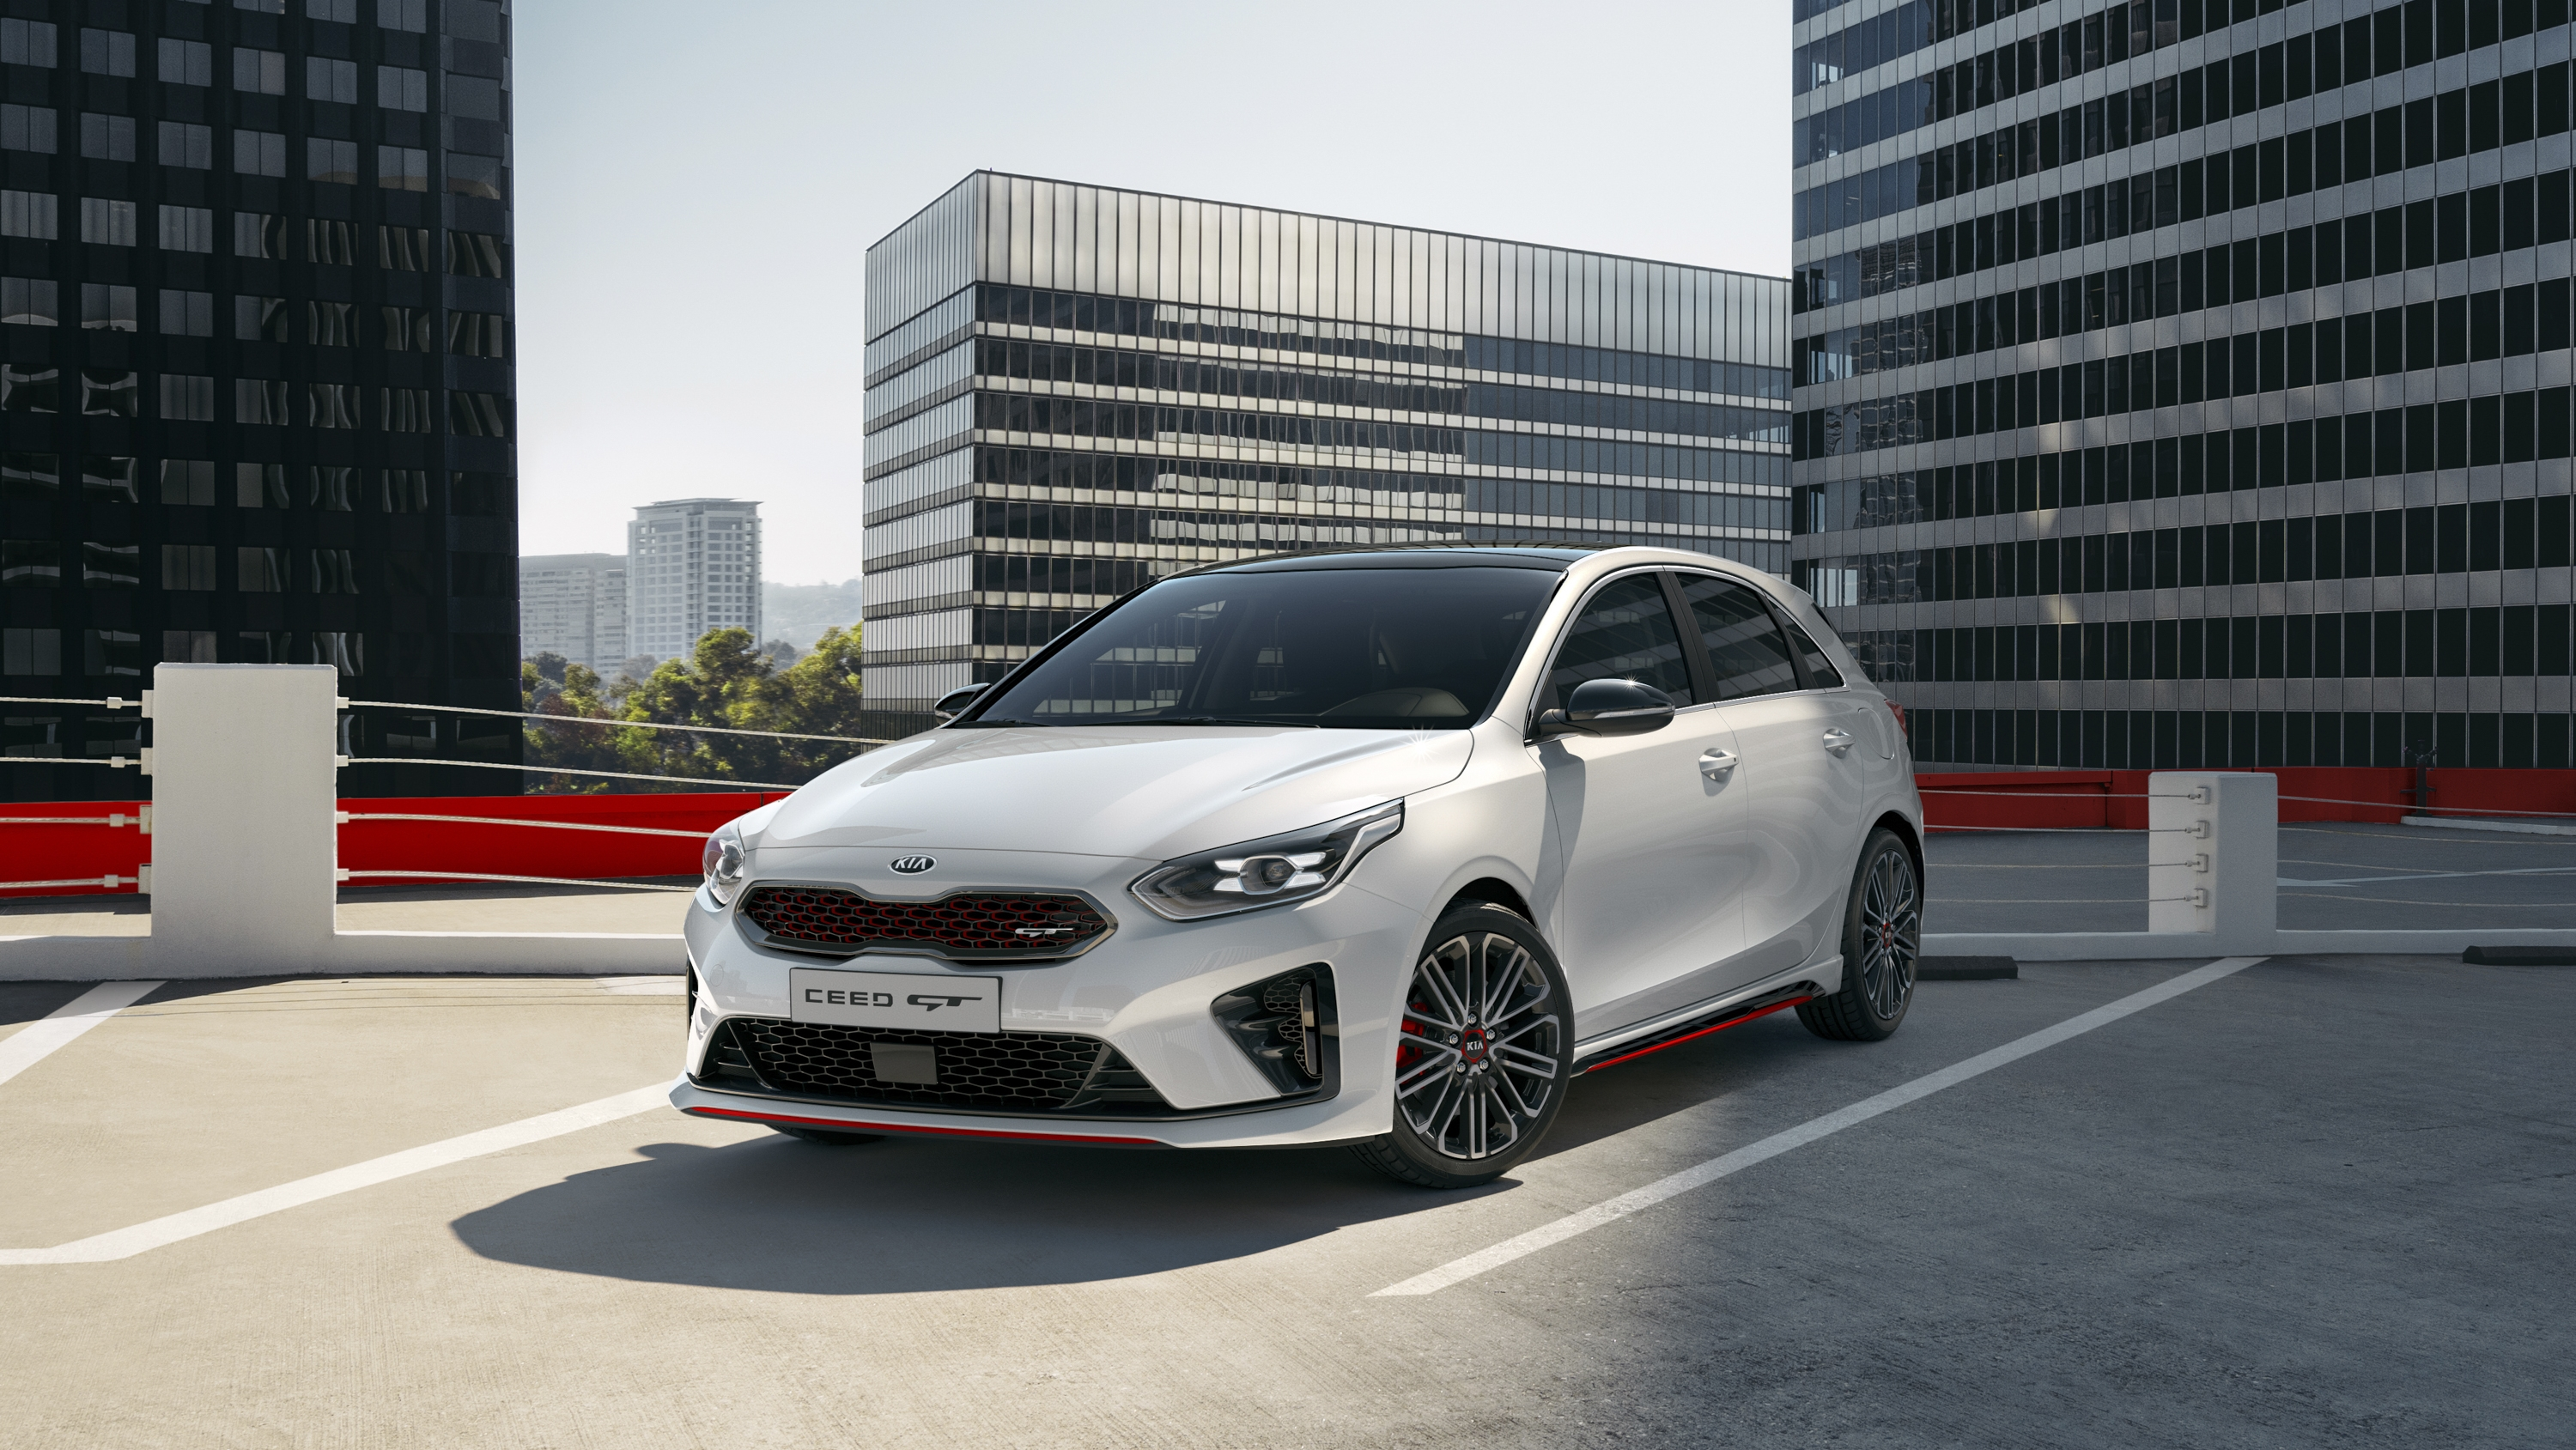 2019 Kia Ceed GT  Top Speed